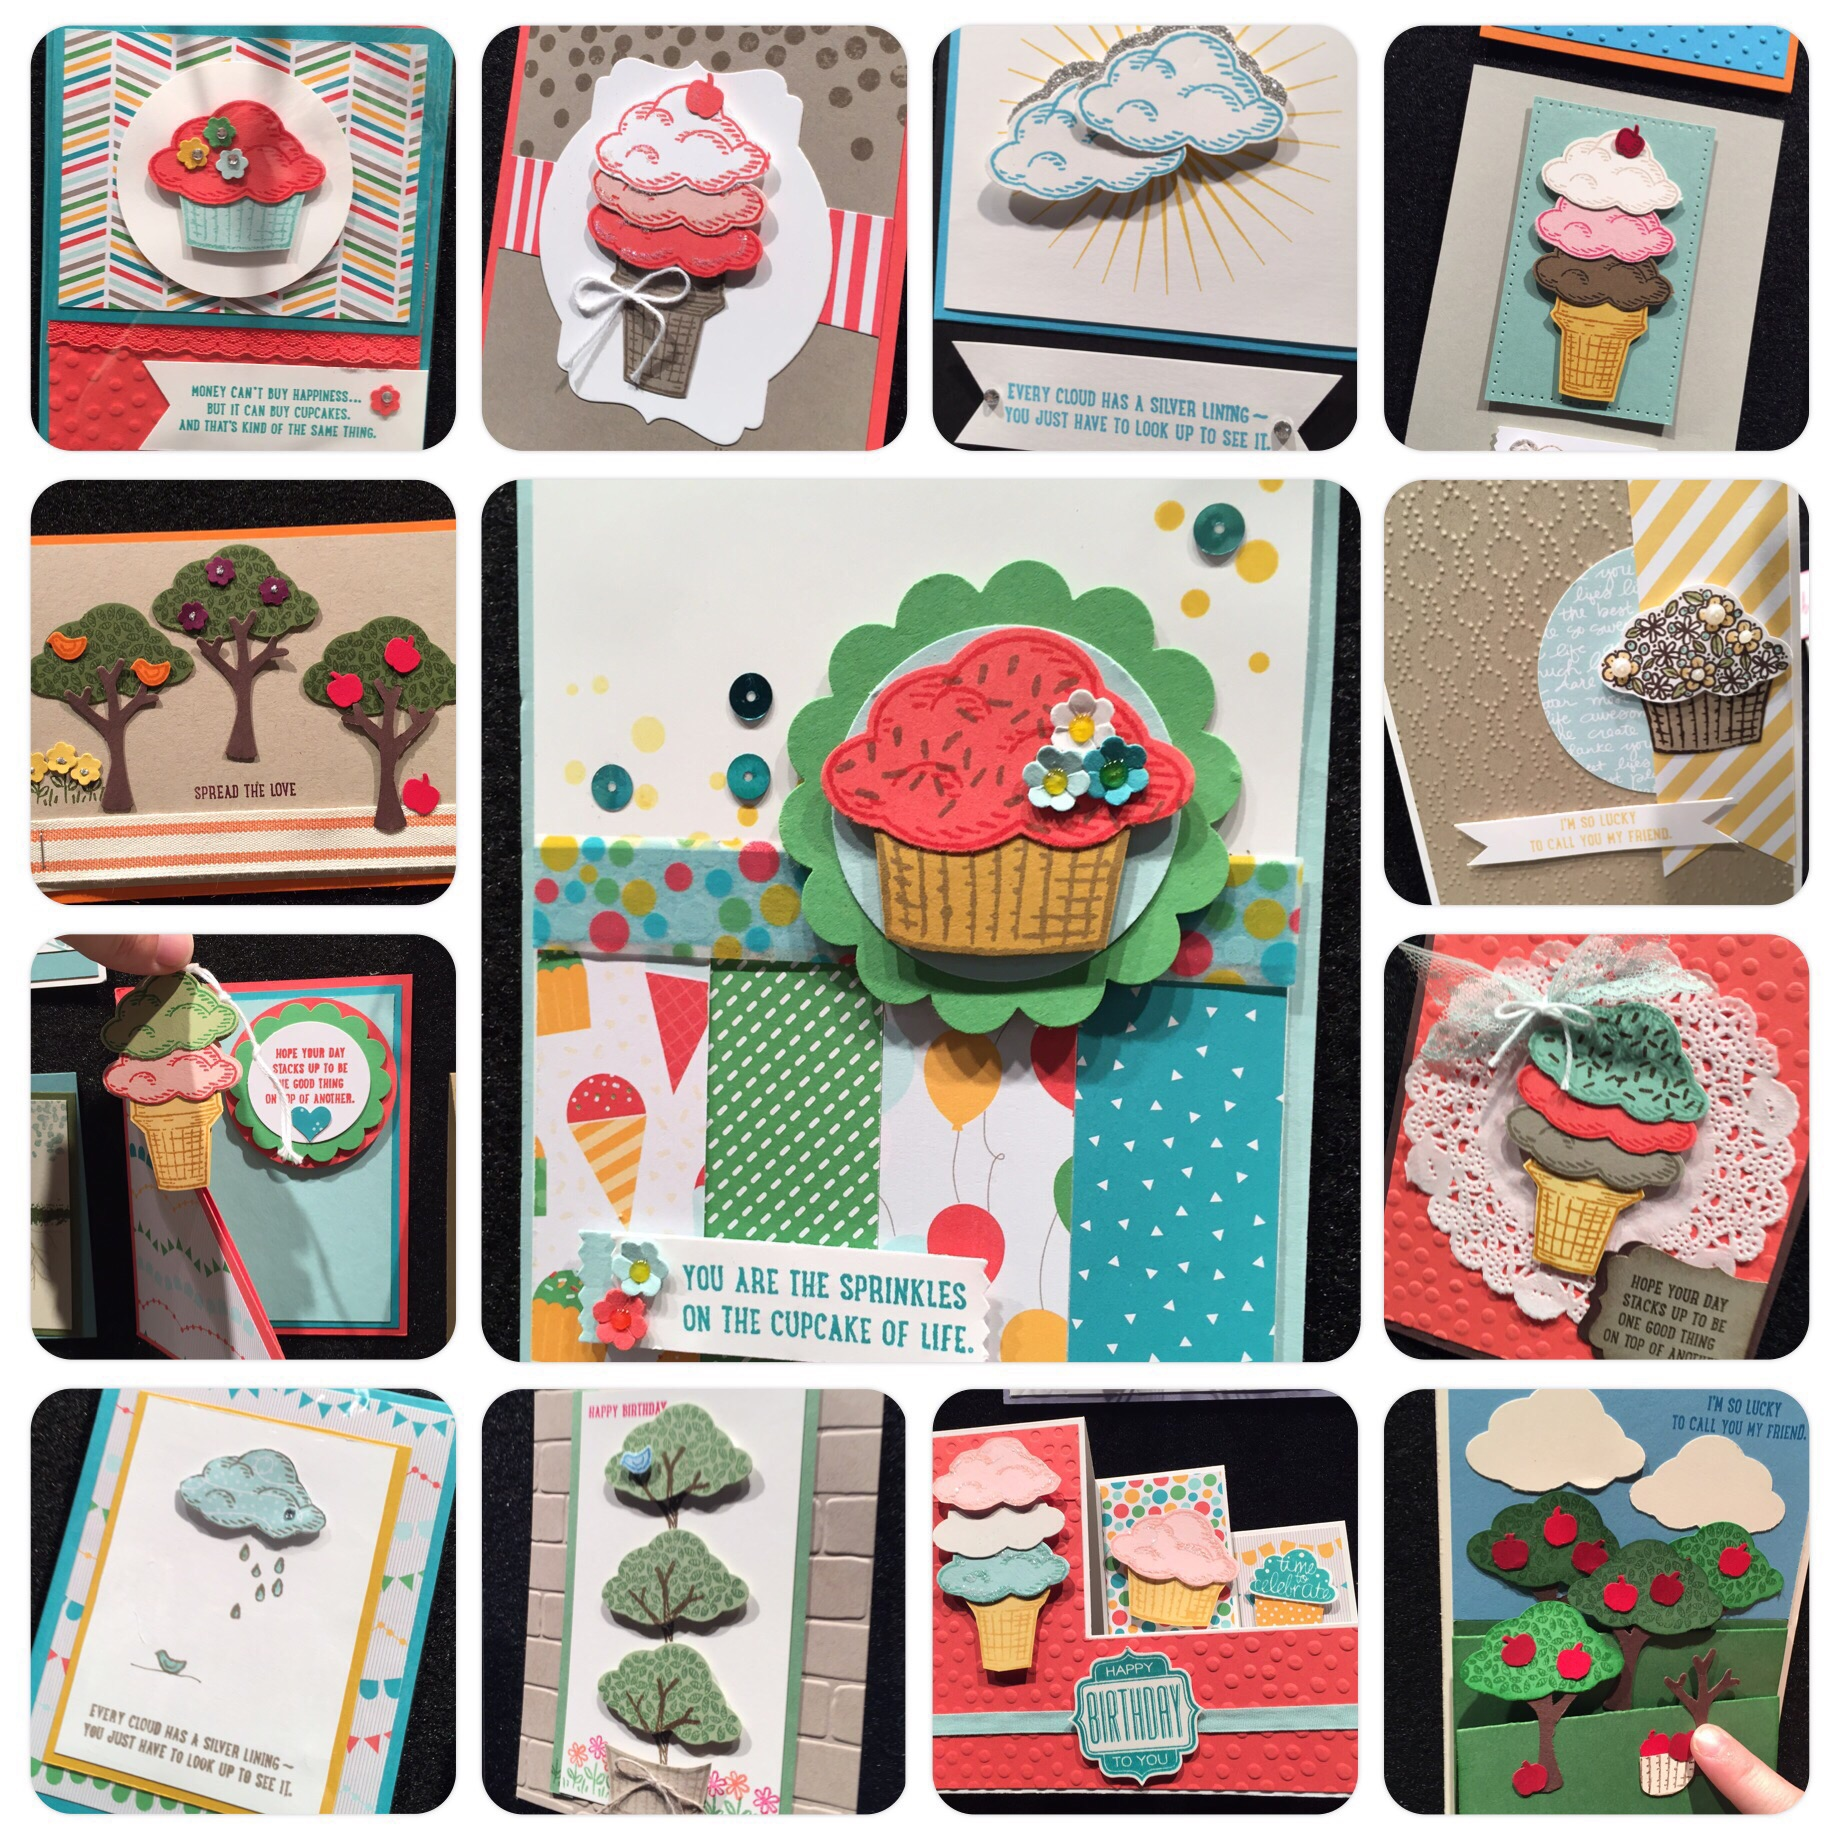 Snippets of display samples from ' Sprinkles of Life'  Stampin' Up!